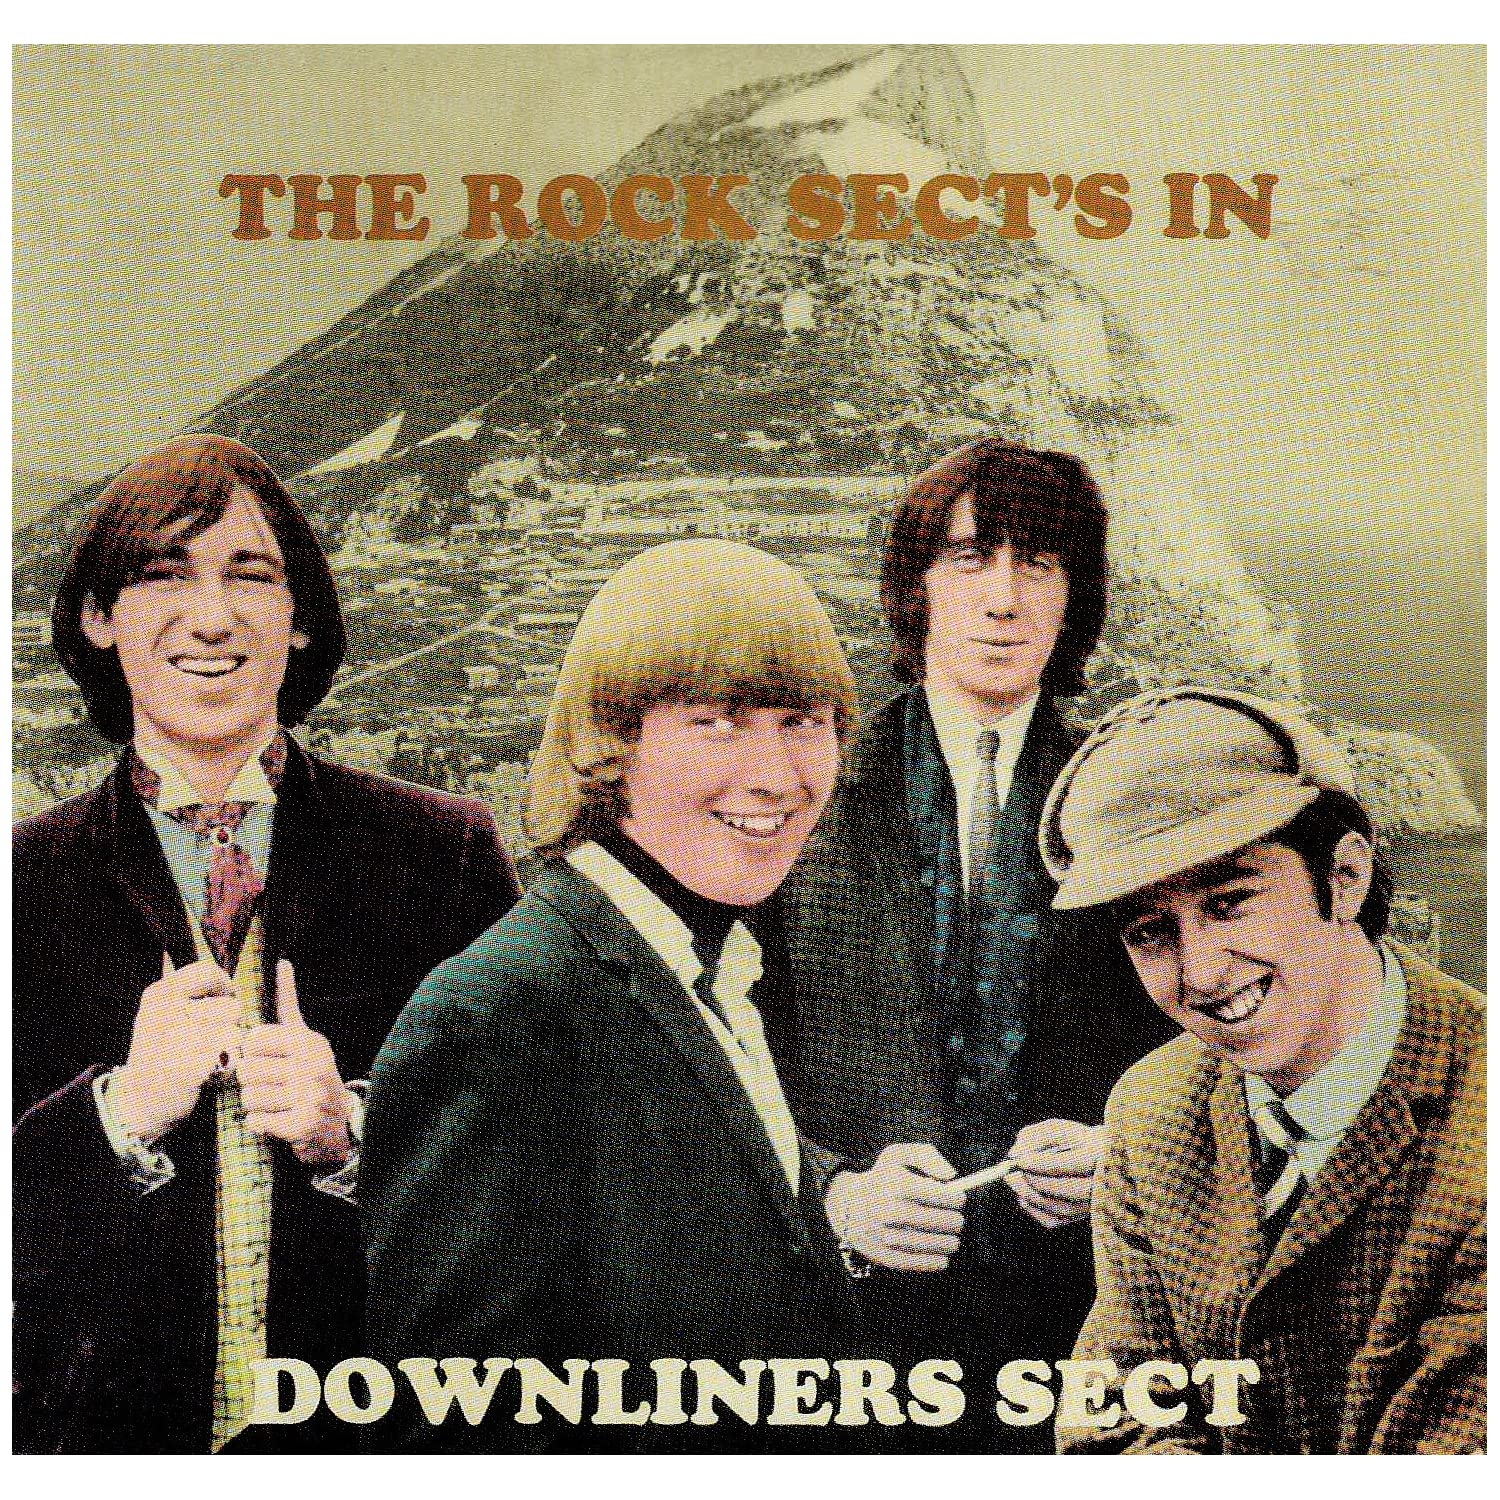 The Downliners Sect